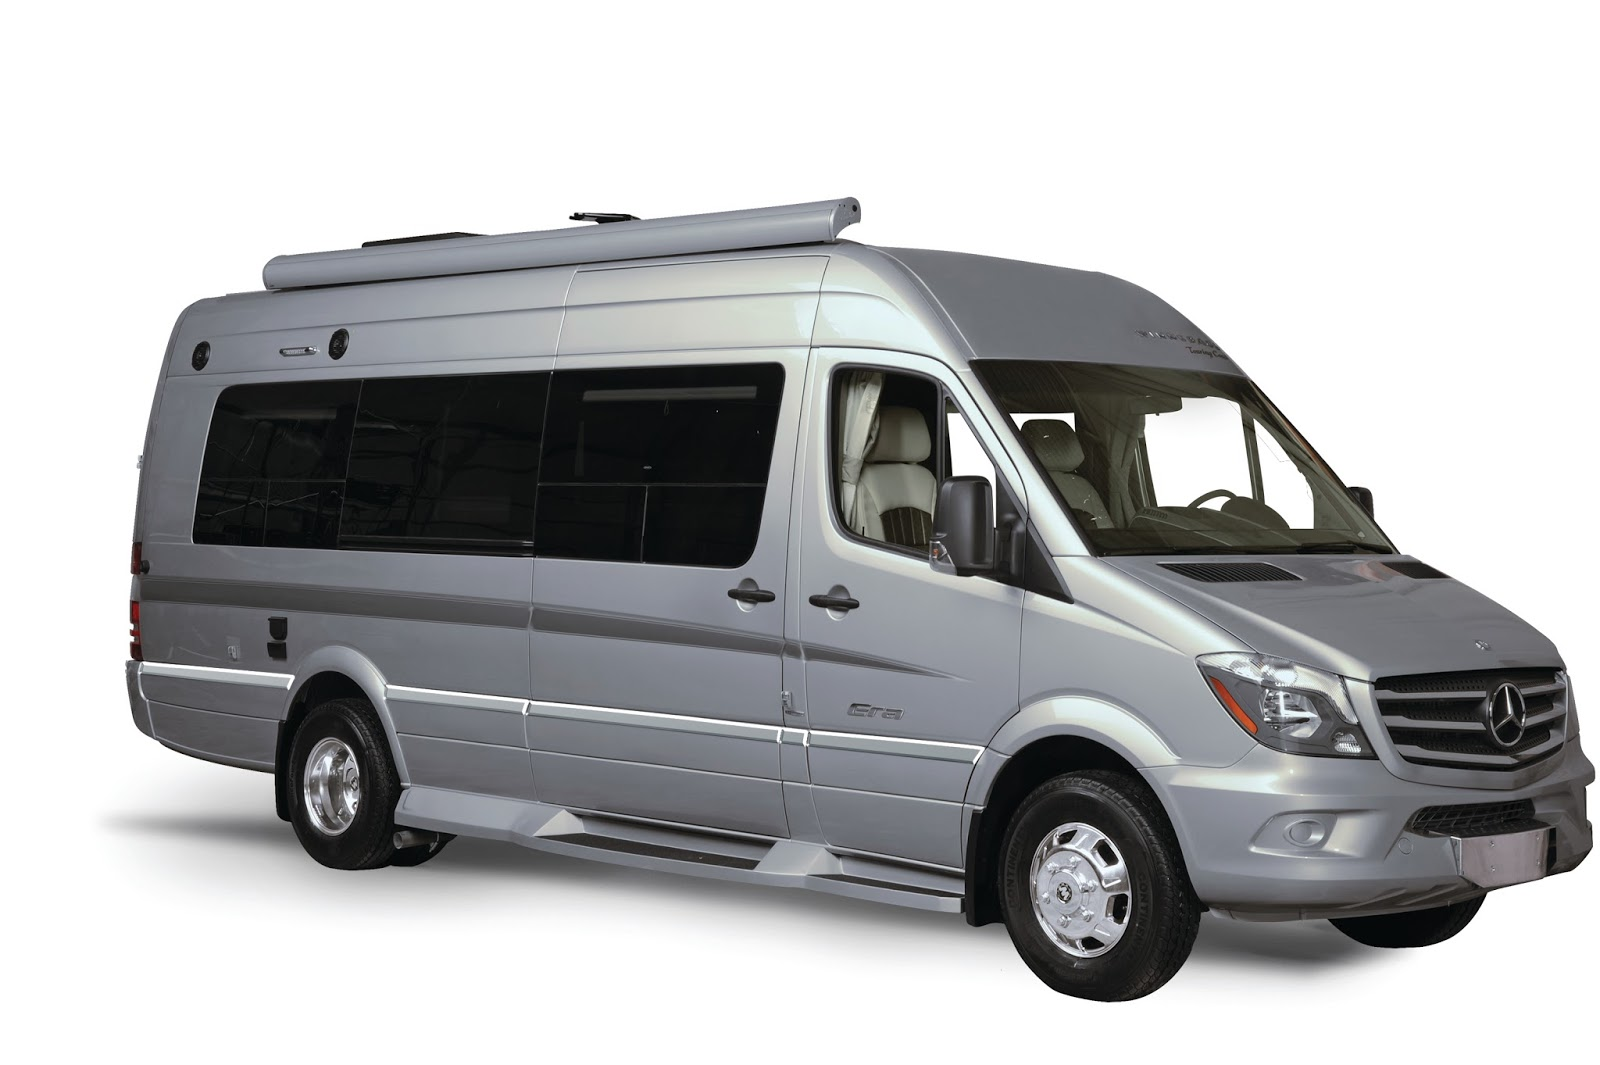 Winnebago Takes Top Spot In Class B Van Sales For The Year